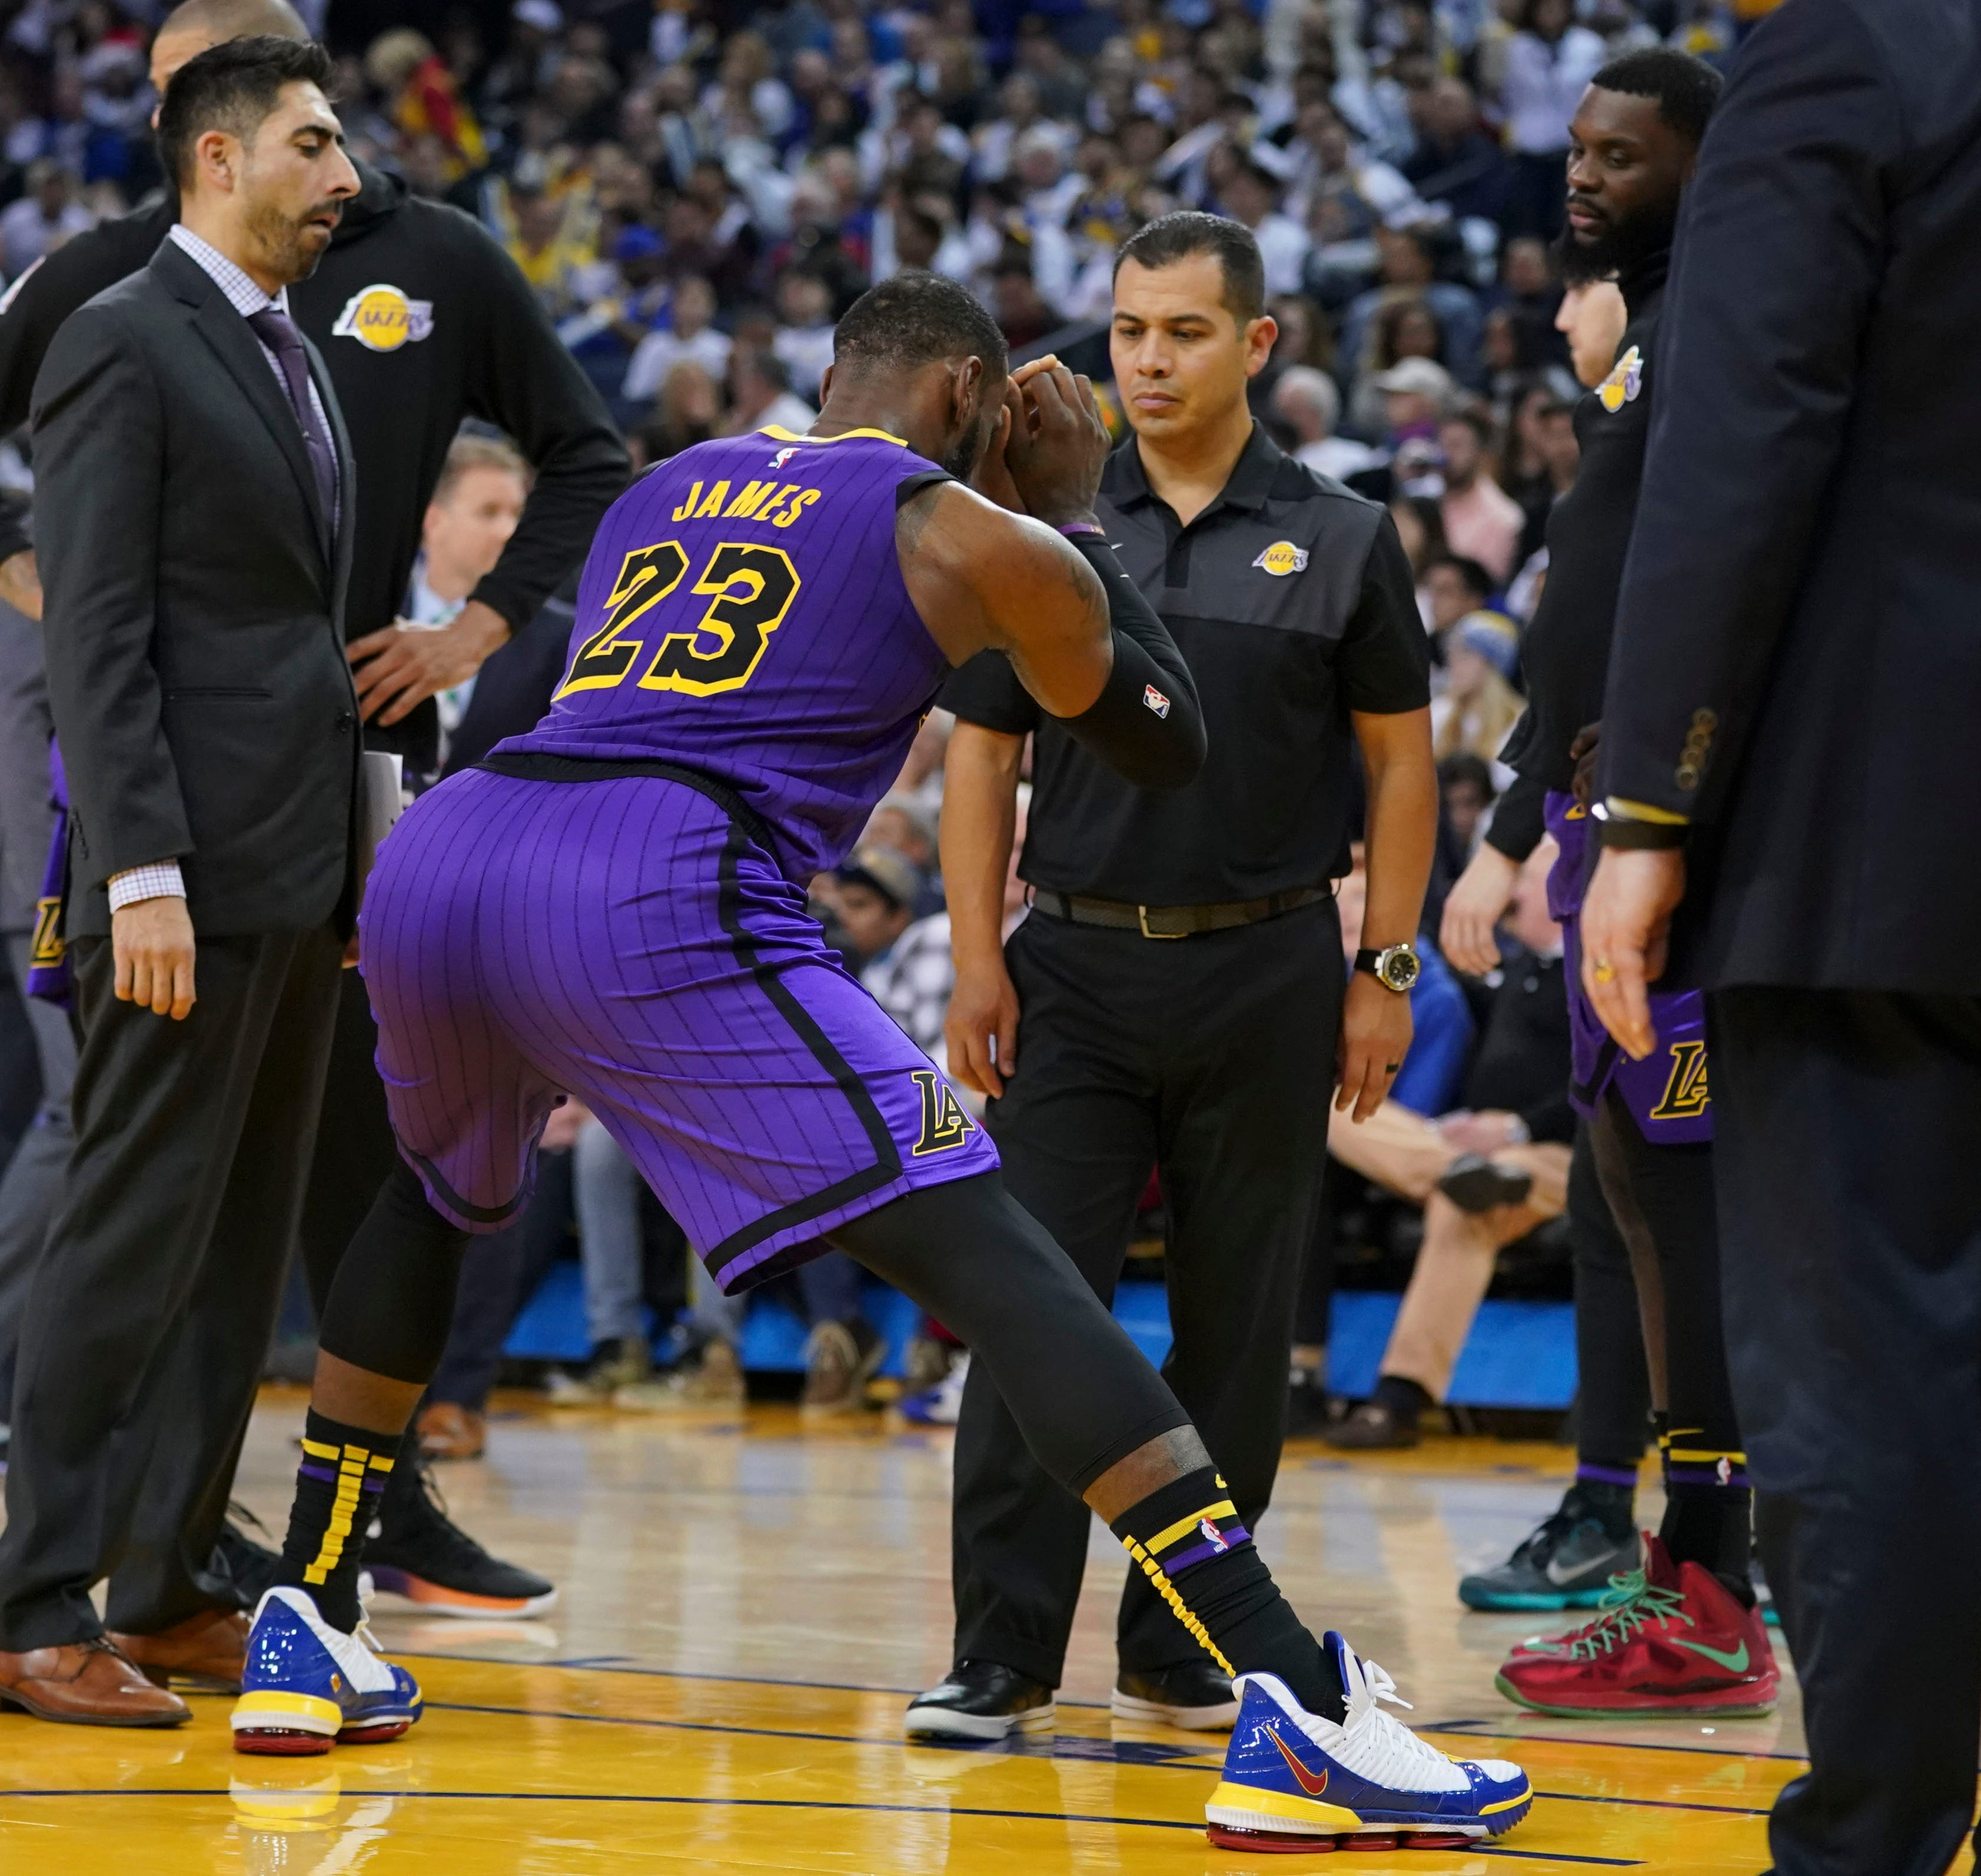 LeBron James suffered a groin injury during the Christmas Day game against Golden State. The Lakers went 6-11 during his absence.